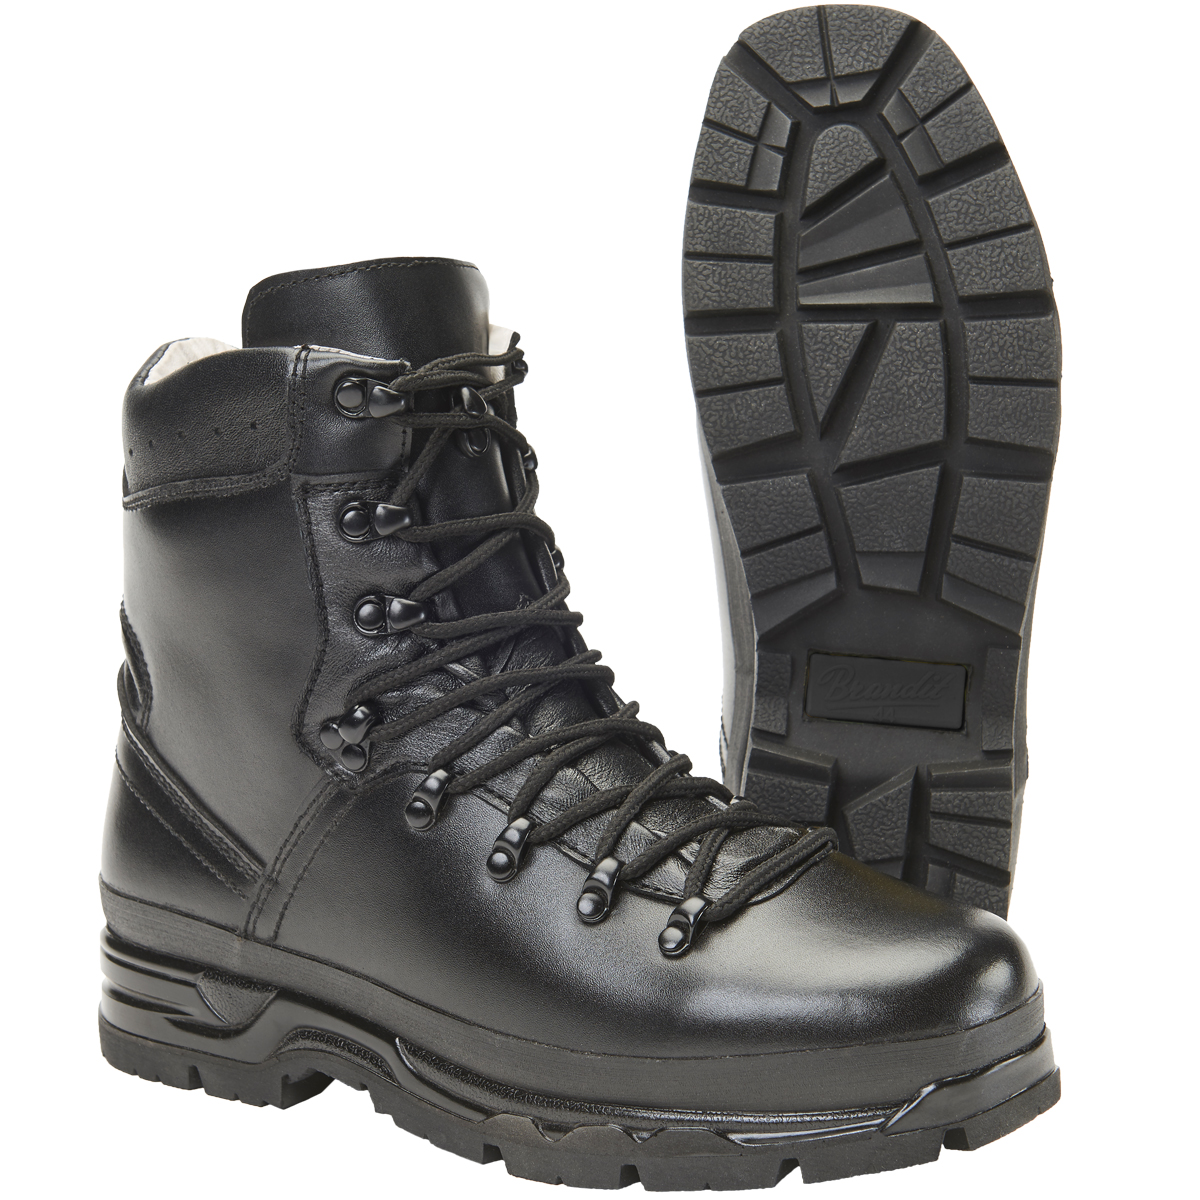 d660861a30689a Sentinel Brandit BW Mountain Boots Leather Hiking Tactical Outdoor Mens  Footwear Black